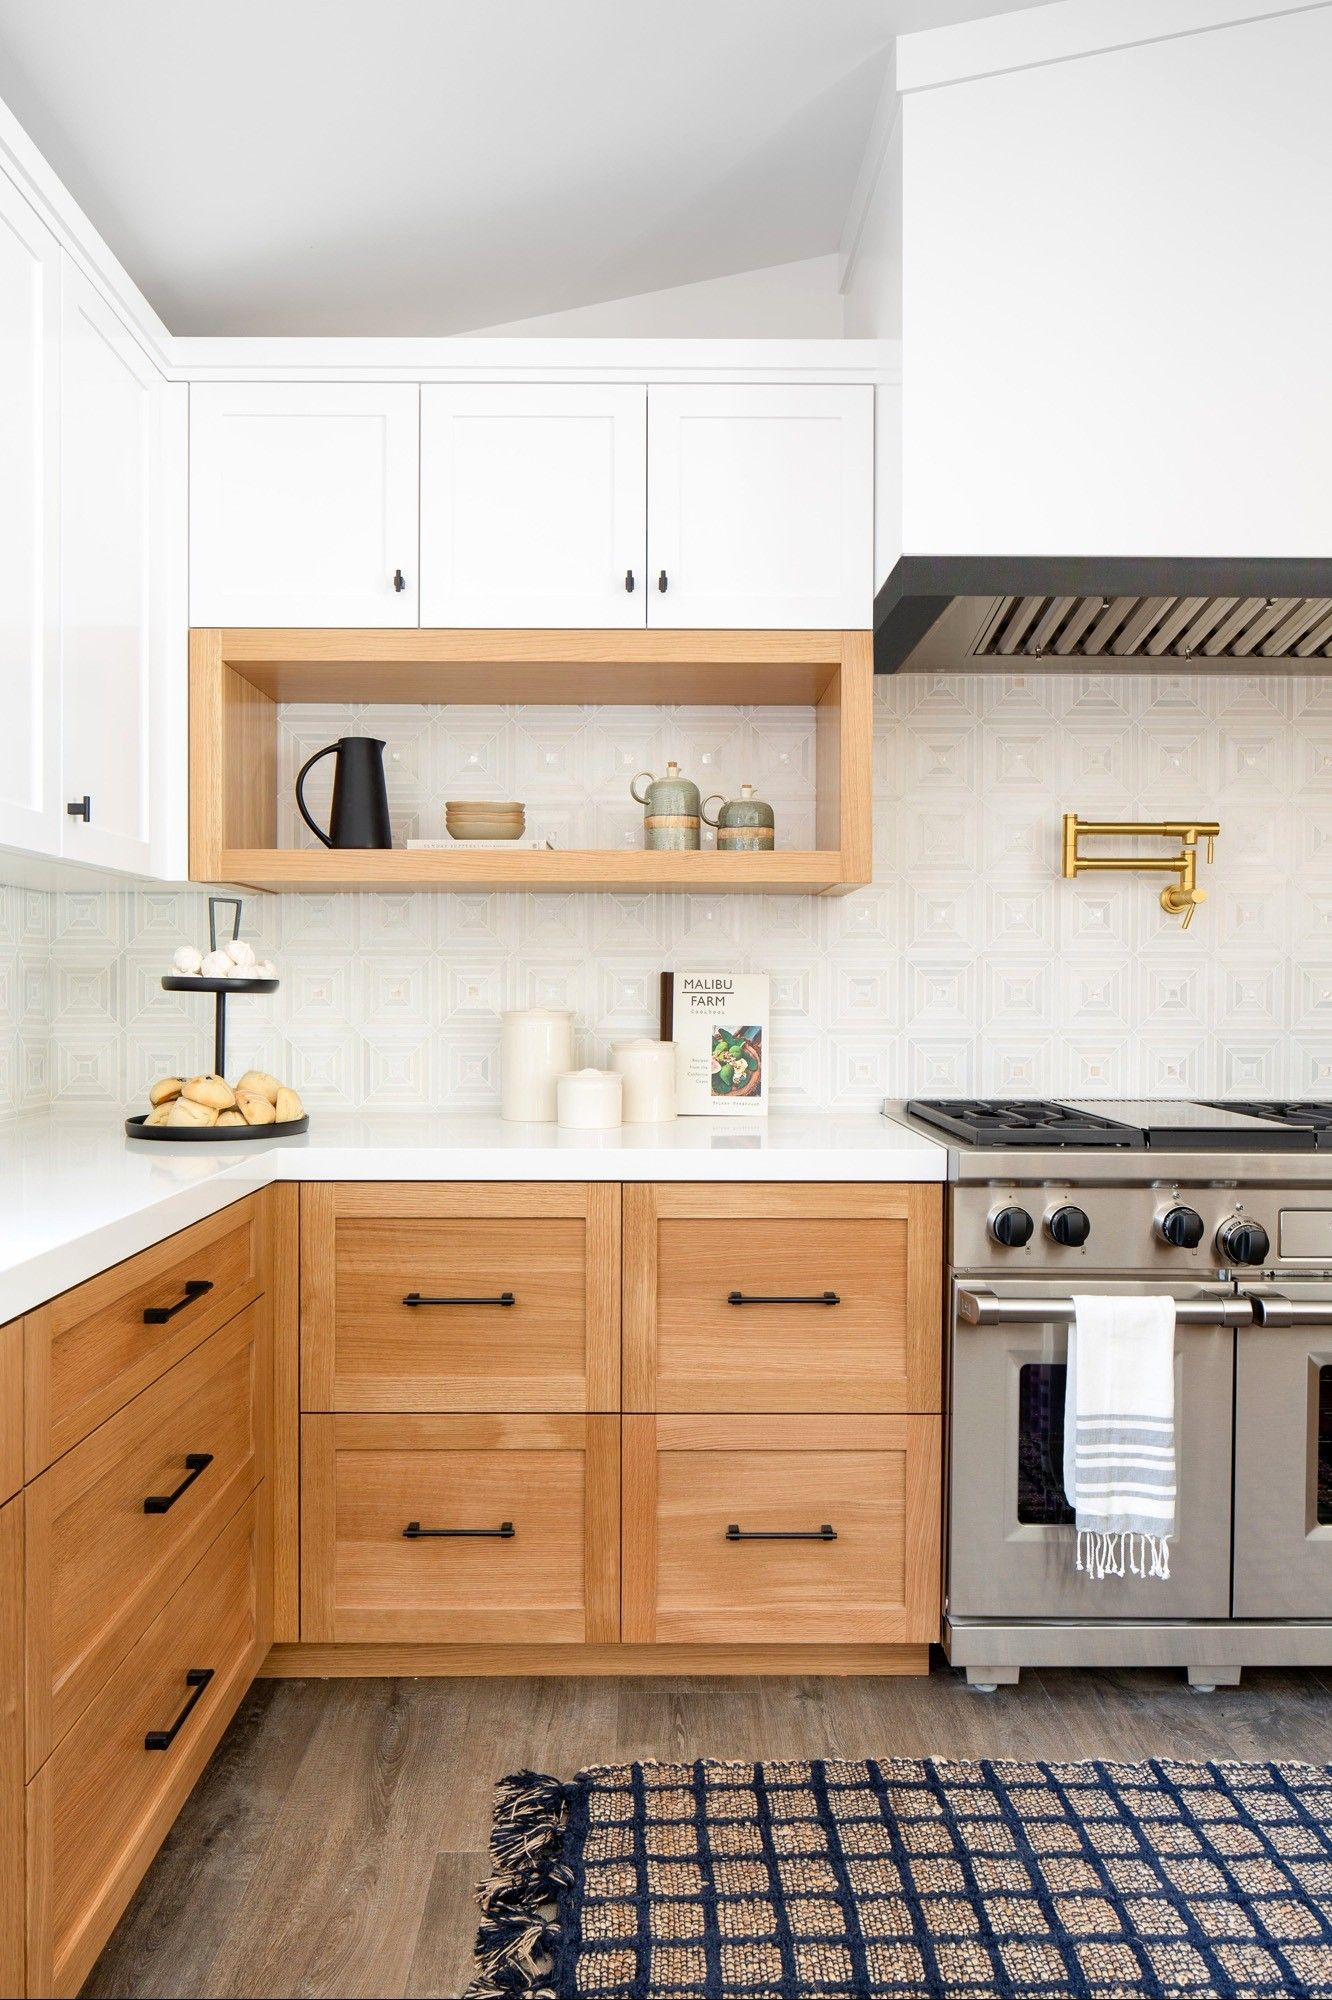 Pin by Heather Nguyen on Home 202 in 2020 Maple kitchen